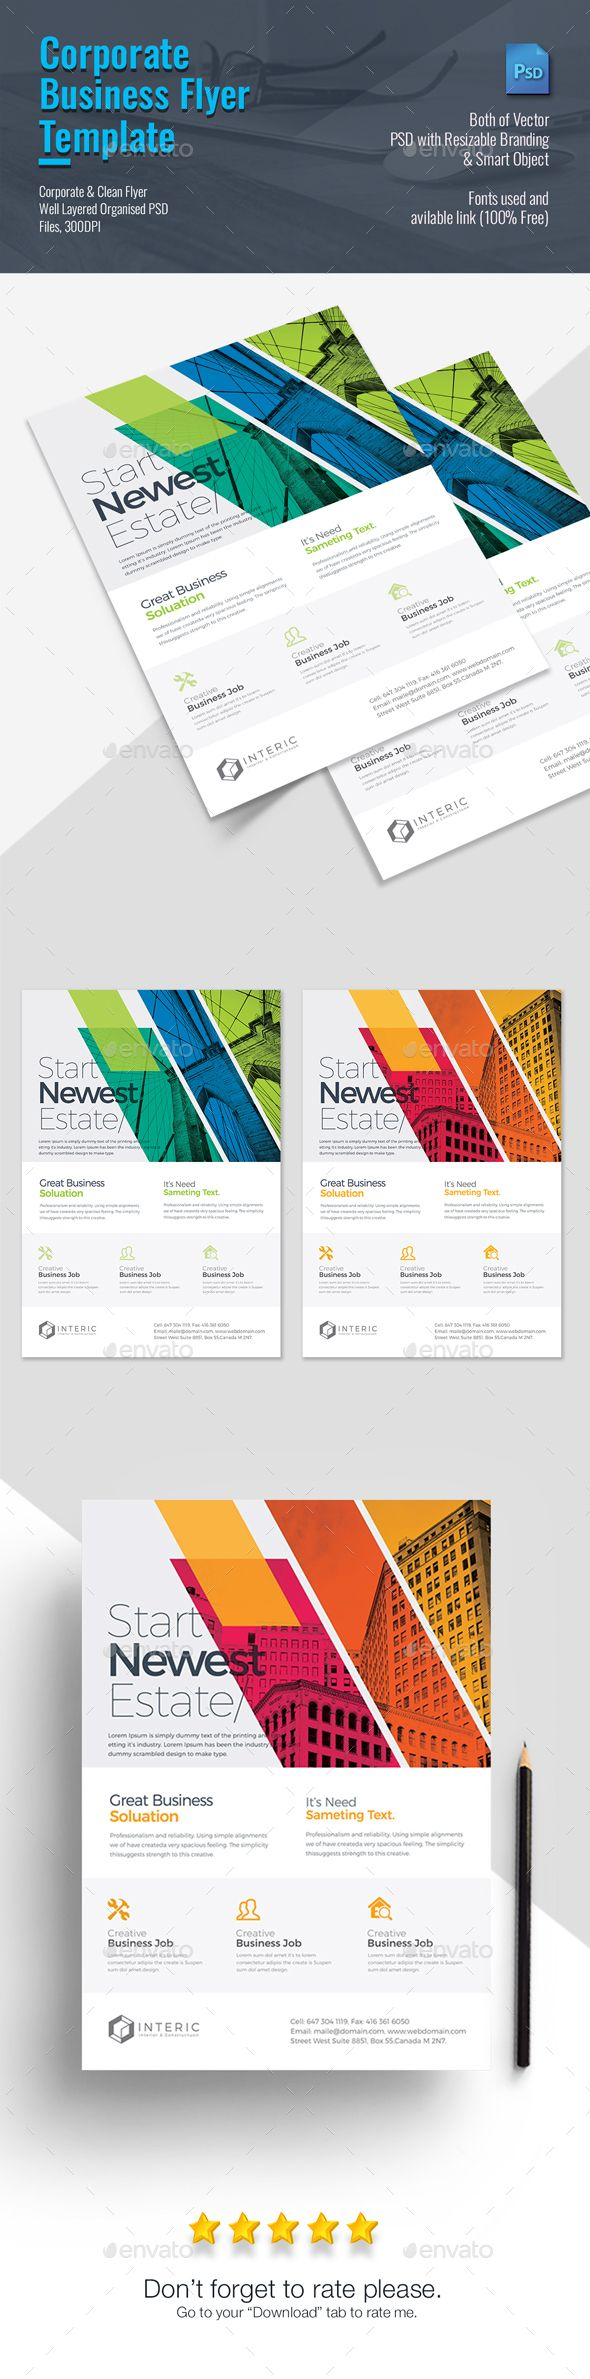 1470 best Corporate Flyers images on Pinterest